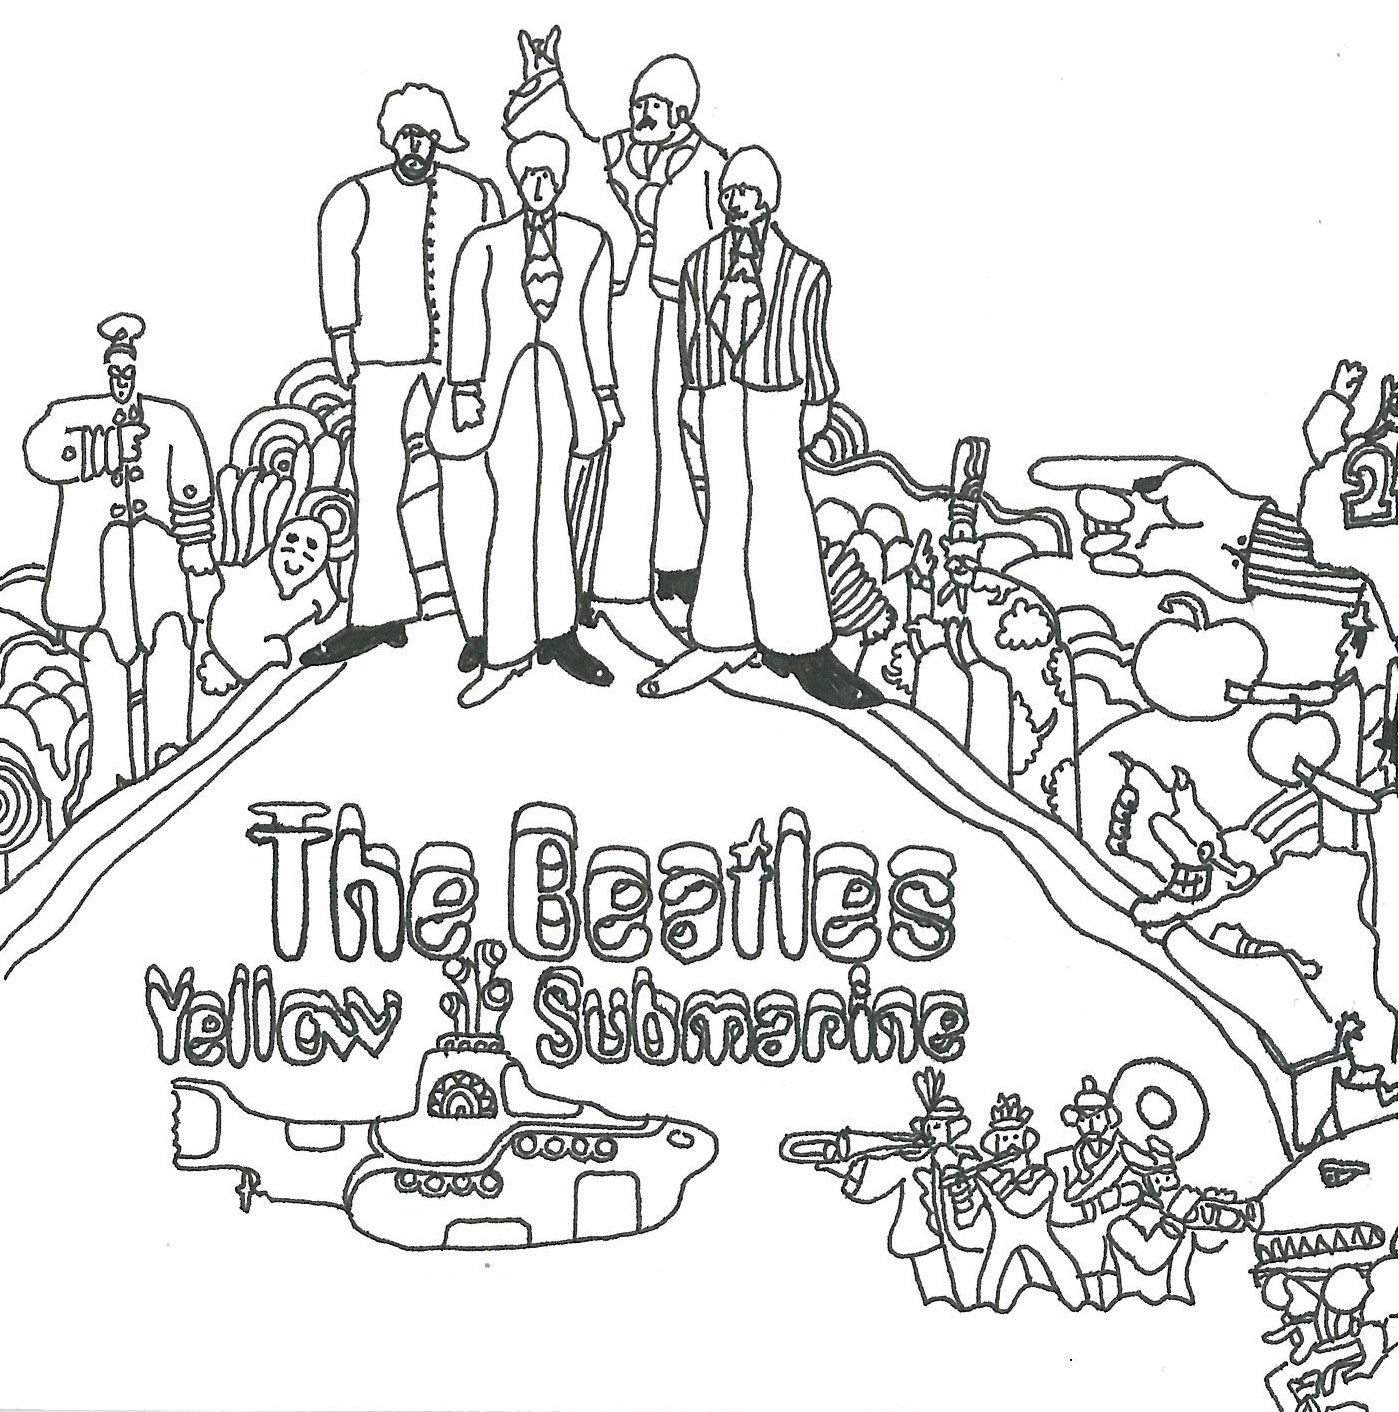 Beatles Yellow Submarine Coloring Page - Coloring Home